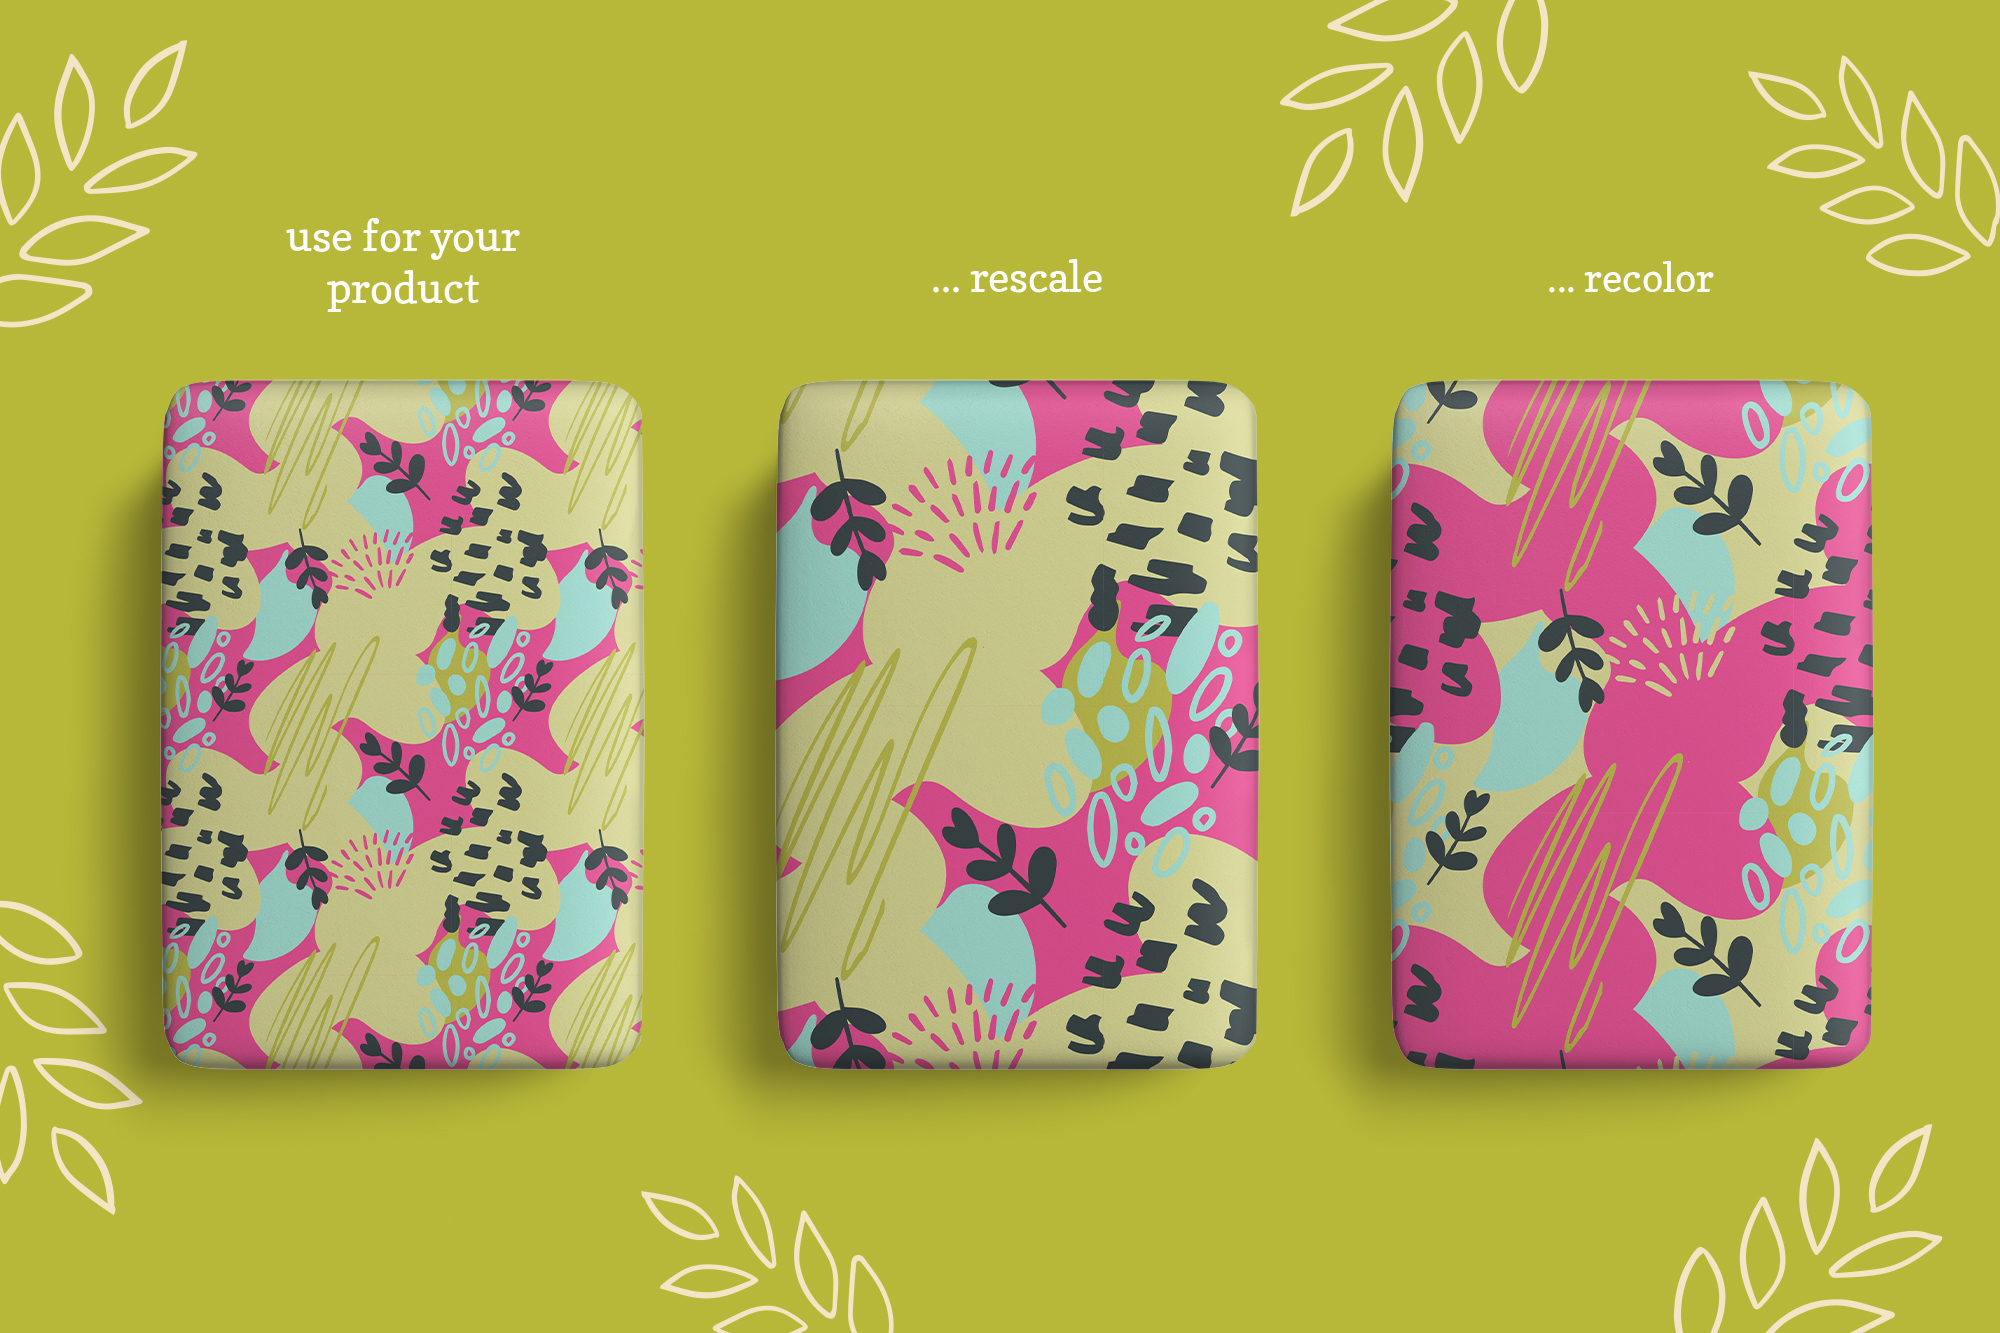 Abstract Flora Patterns and Clip Art Set